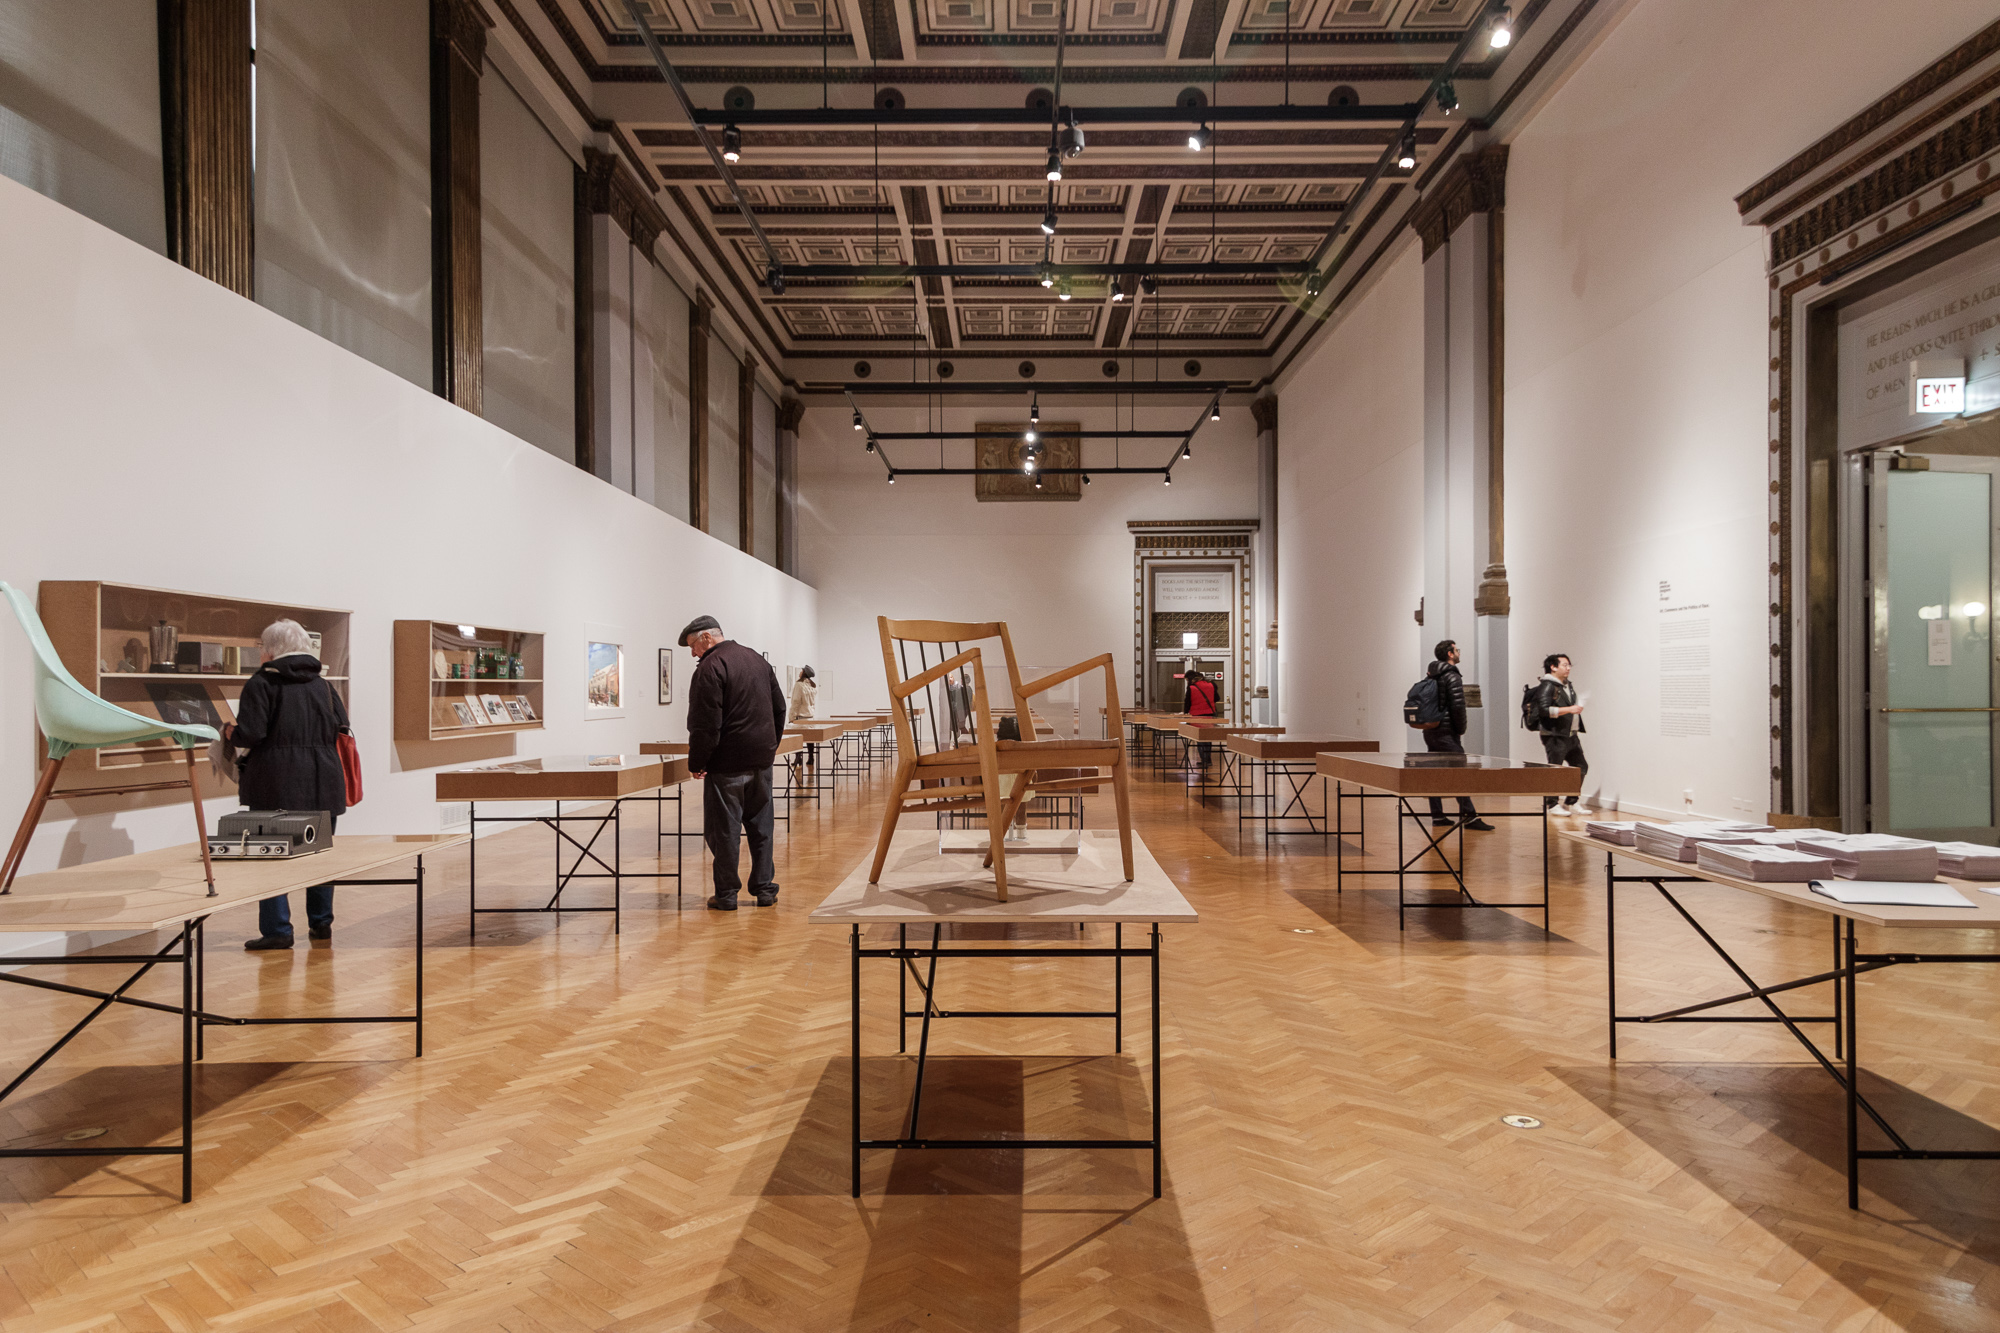 Installation view, African American Designers in Chicago: Art, Commerce, and the Politics of Race at the Chicago Cultural Center, 2018. Photo credit: Jon Shaft.